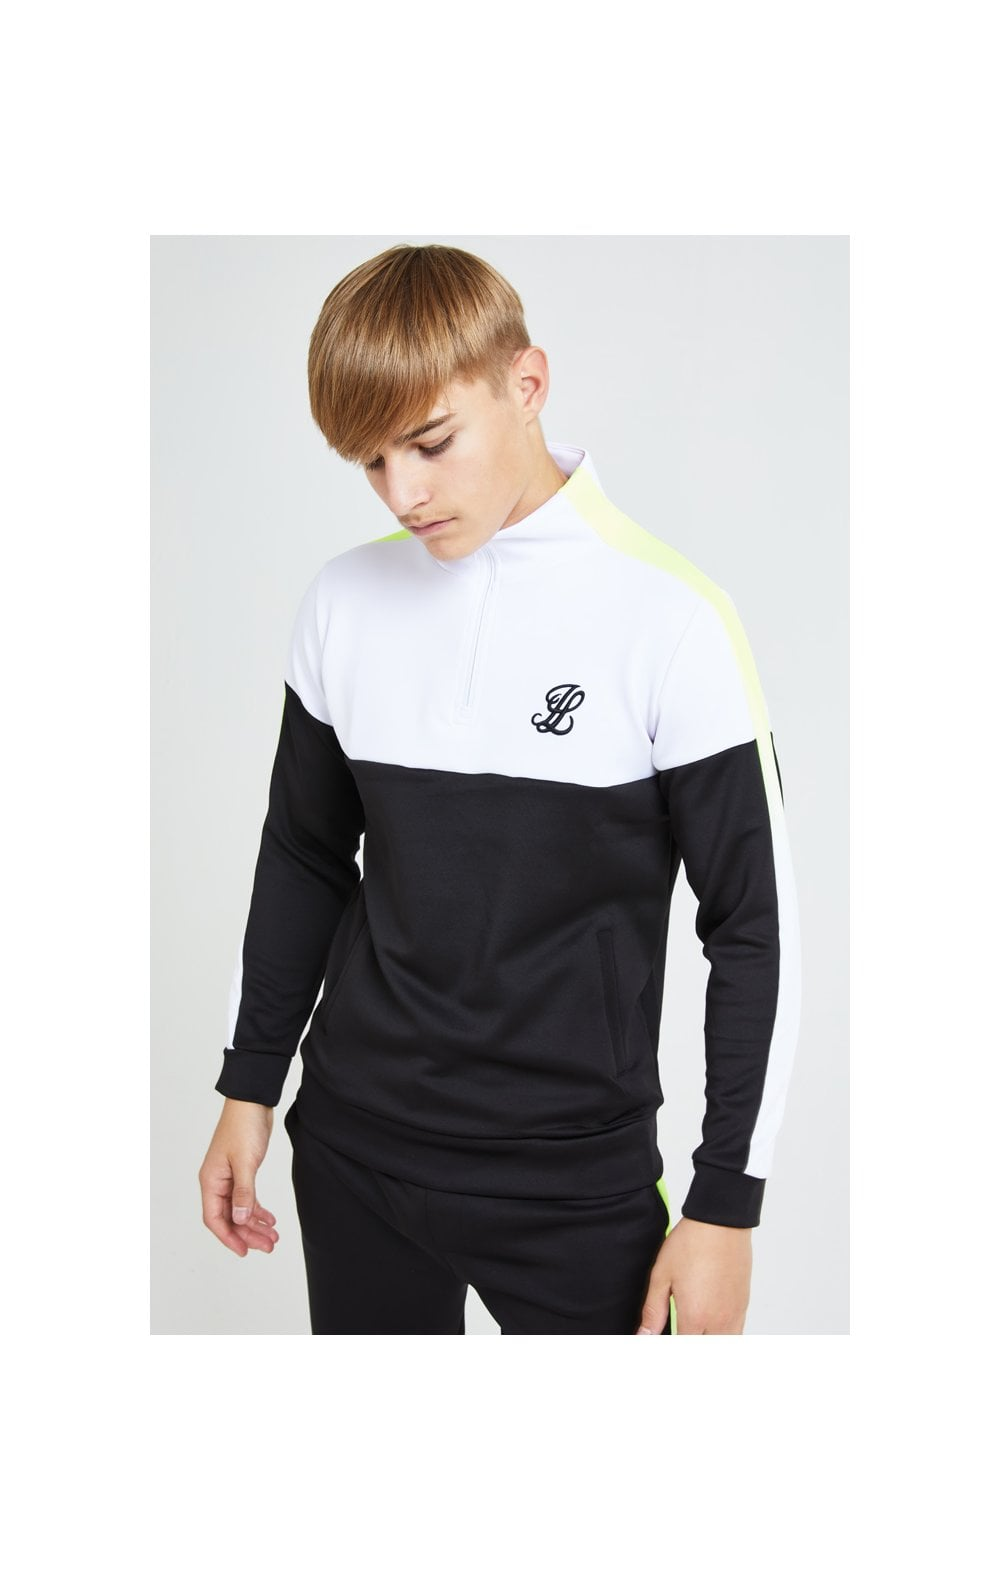 Illusive London Fade Funnel Neck Hoodie - Black,White & Neon Yellow (5)